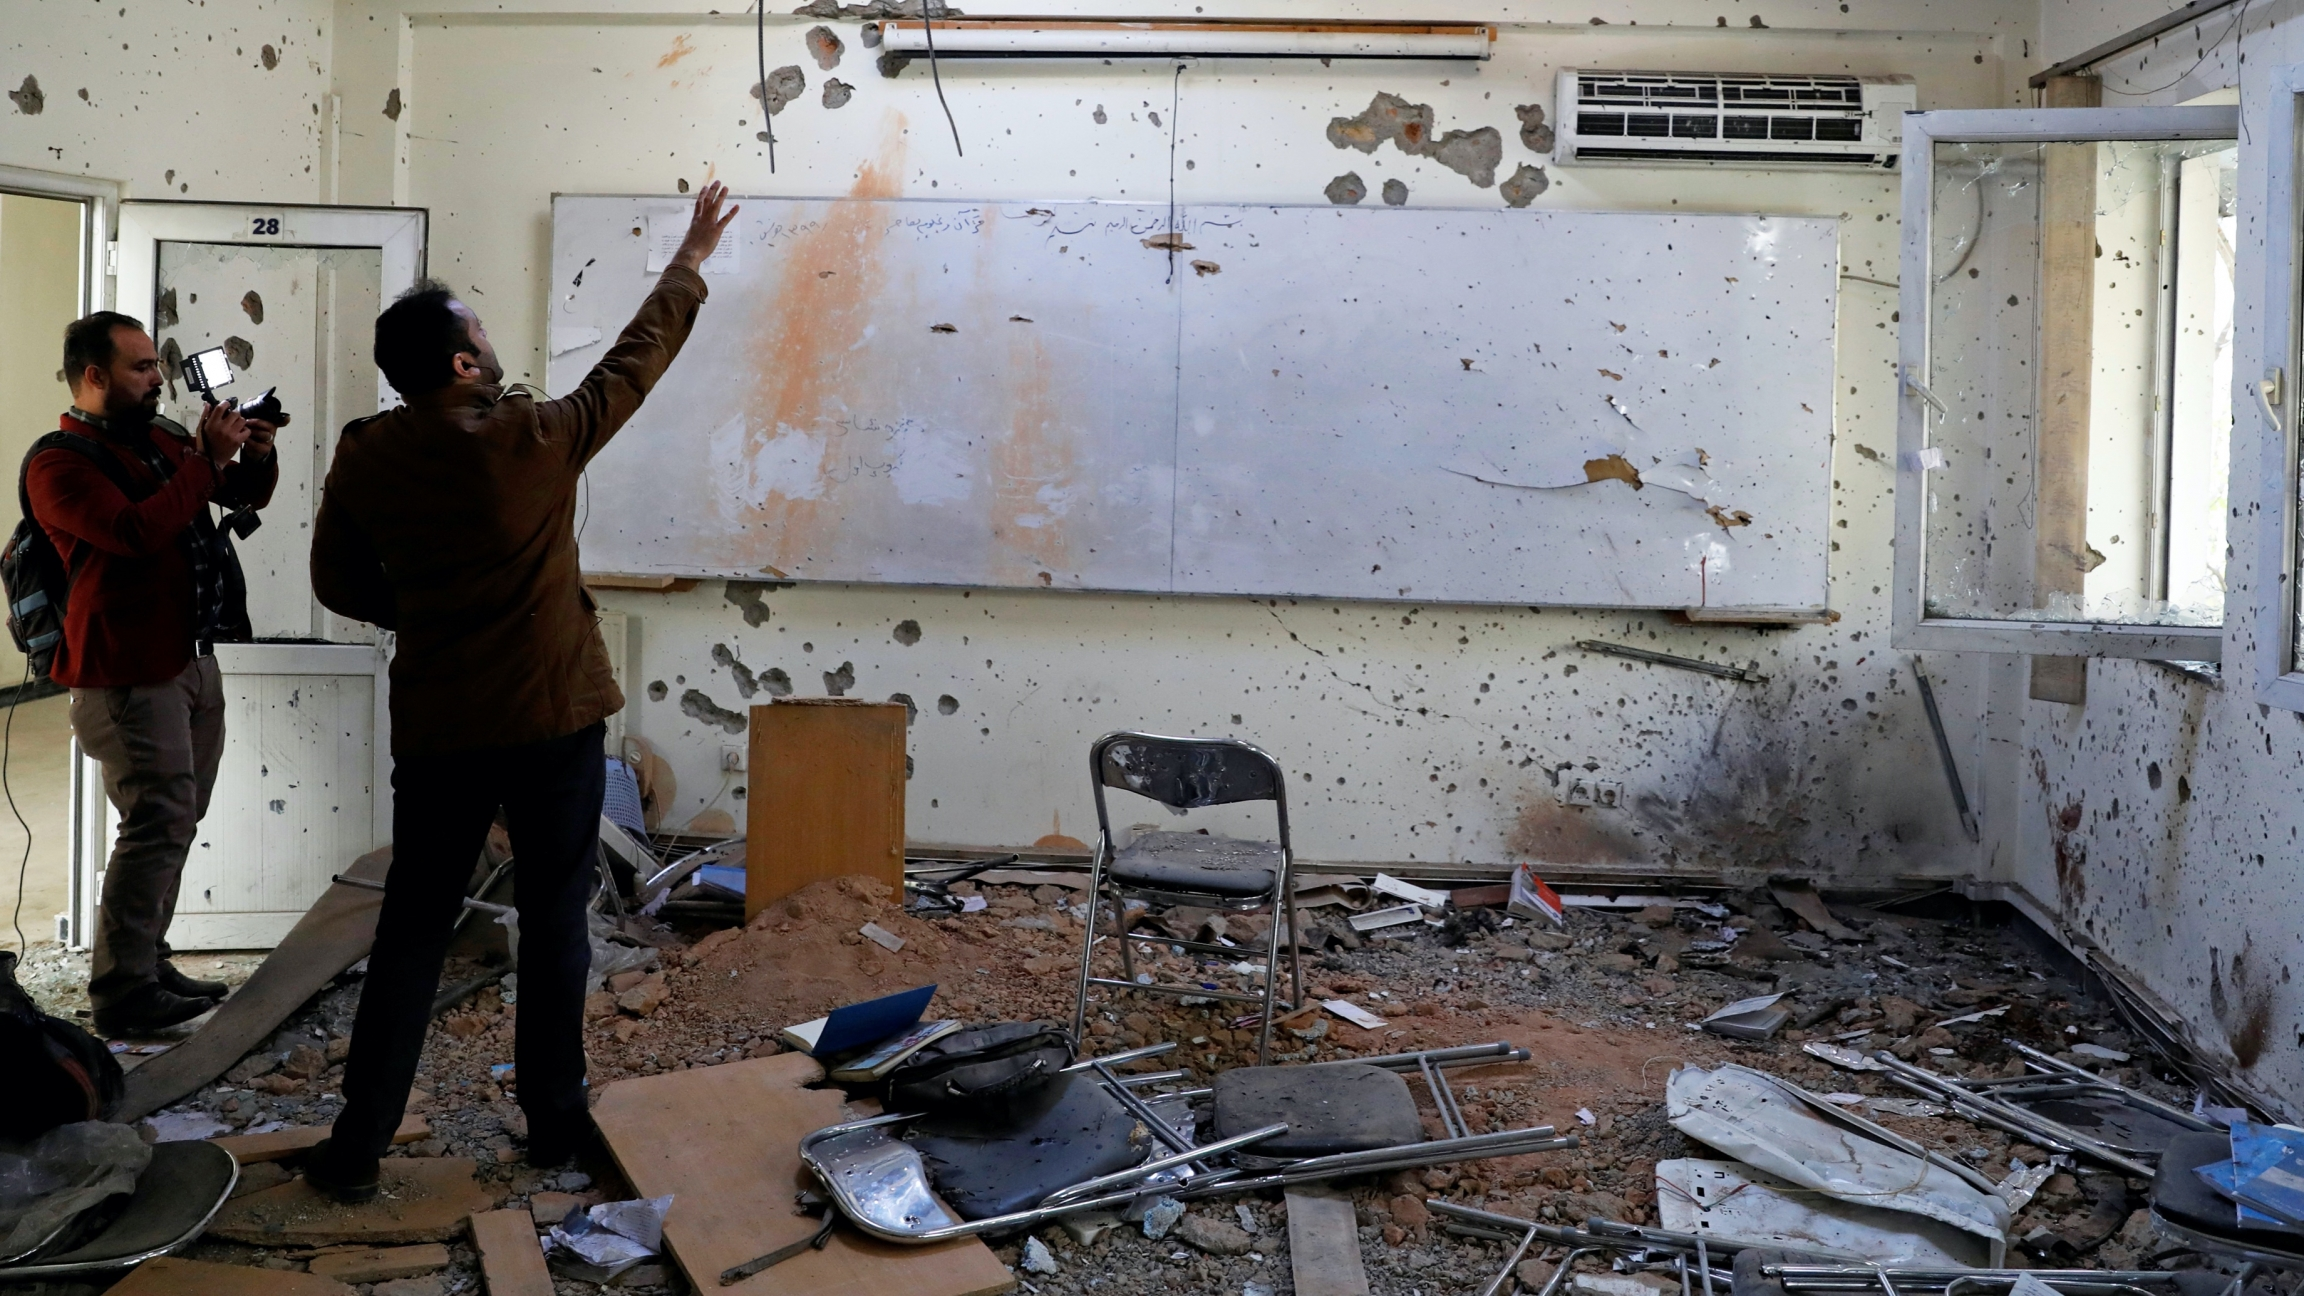 Two journalists look at a bombed out classroom with chair strewn and walls shot with bullets.